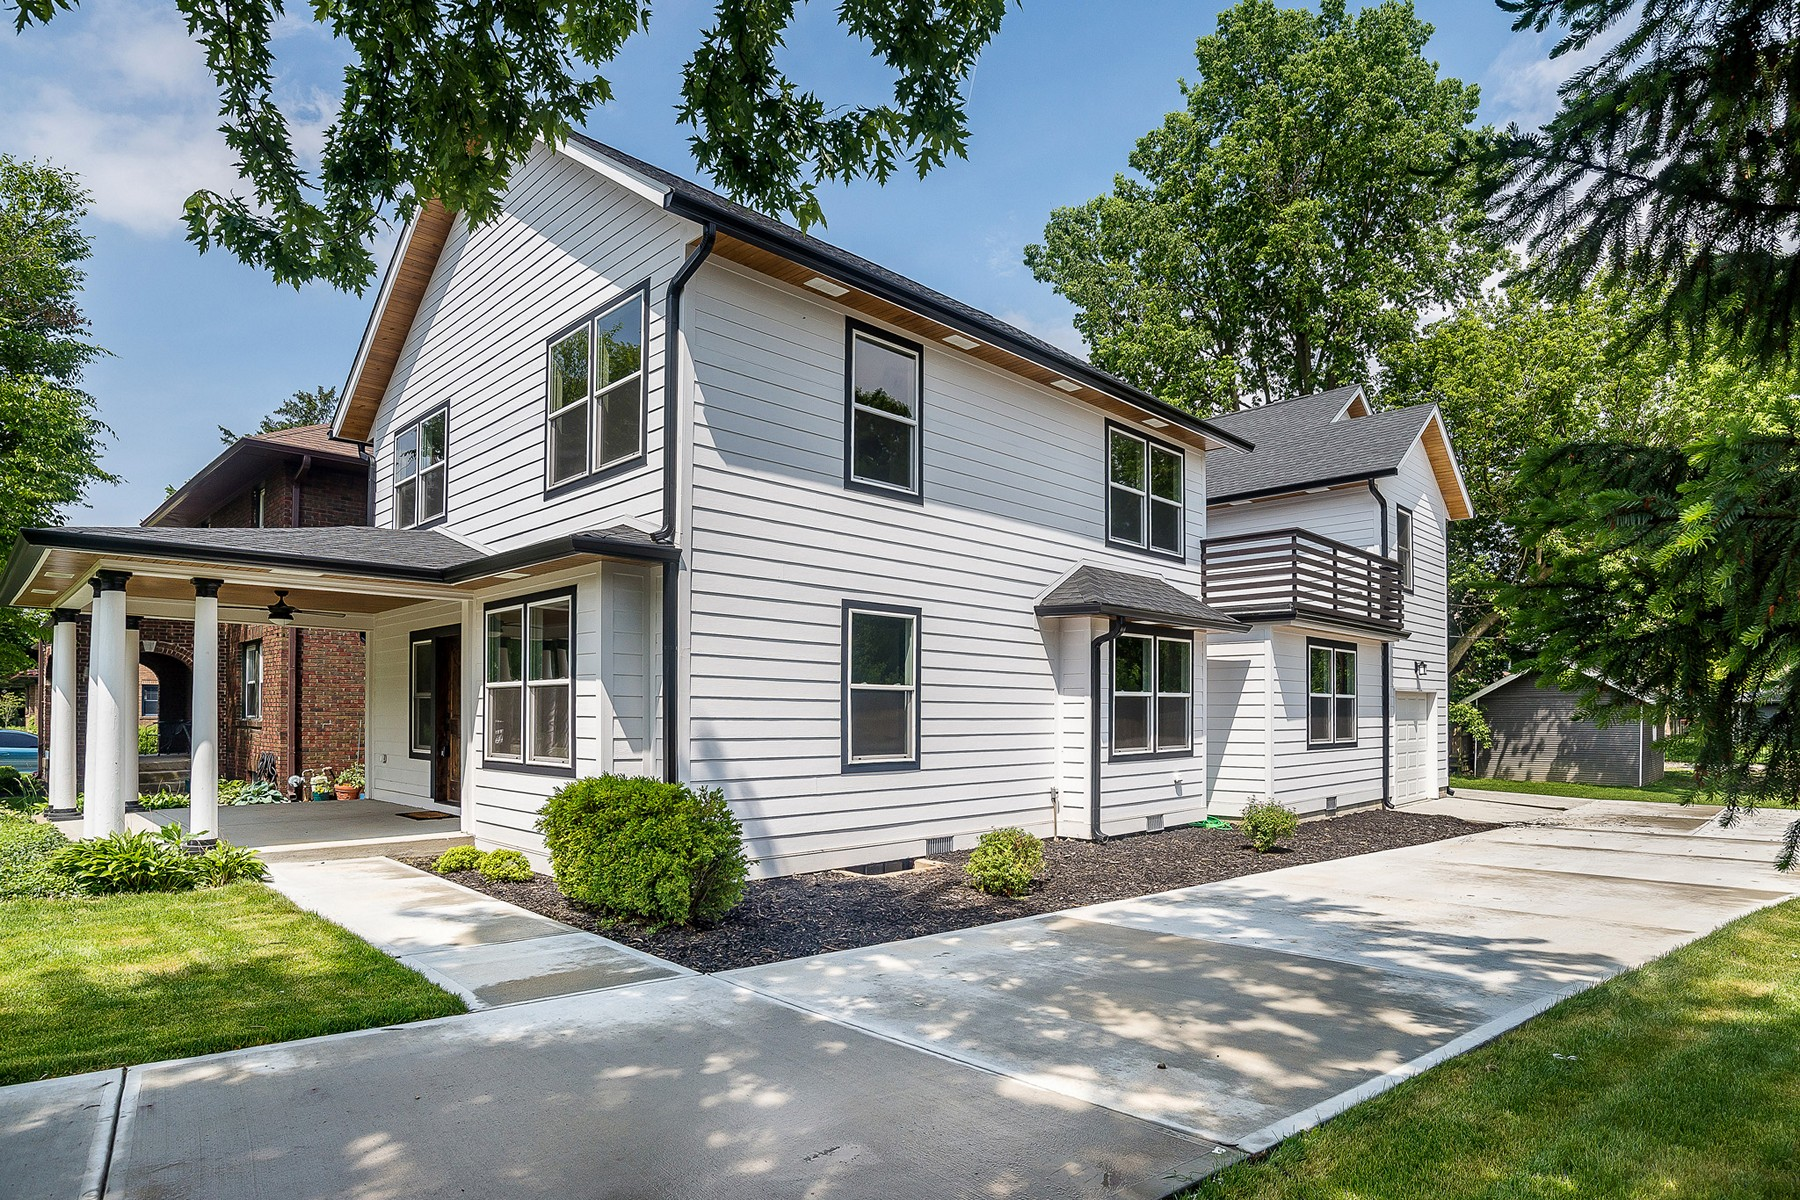 Single Family Home for Sale at Completely Renovated & Updated! 4927 N. Pennsylvania Street Indianapolis, Indiana, 46205 United States